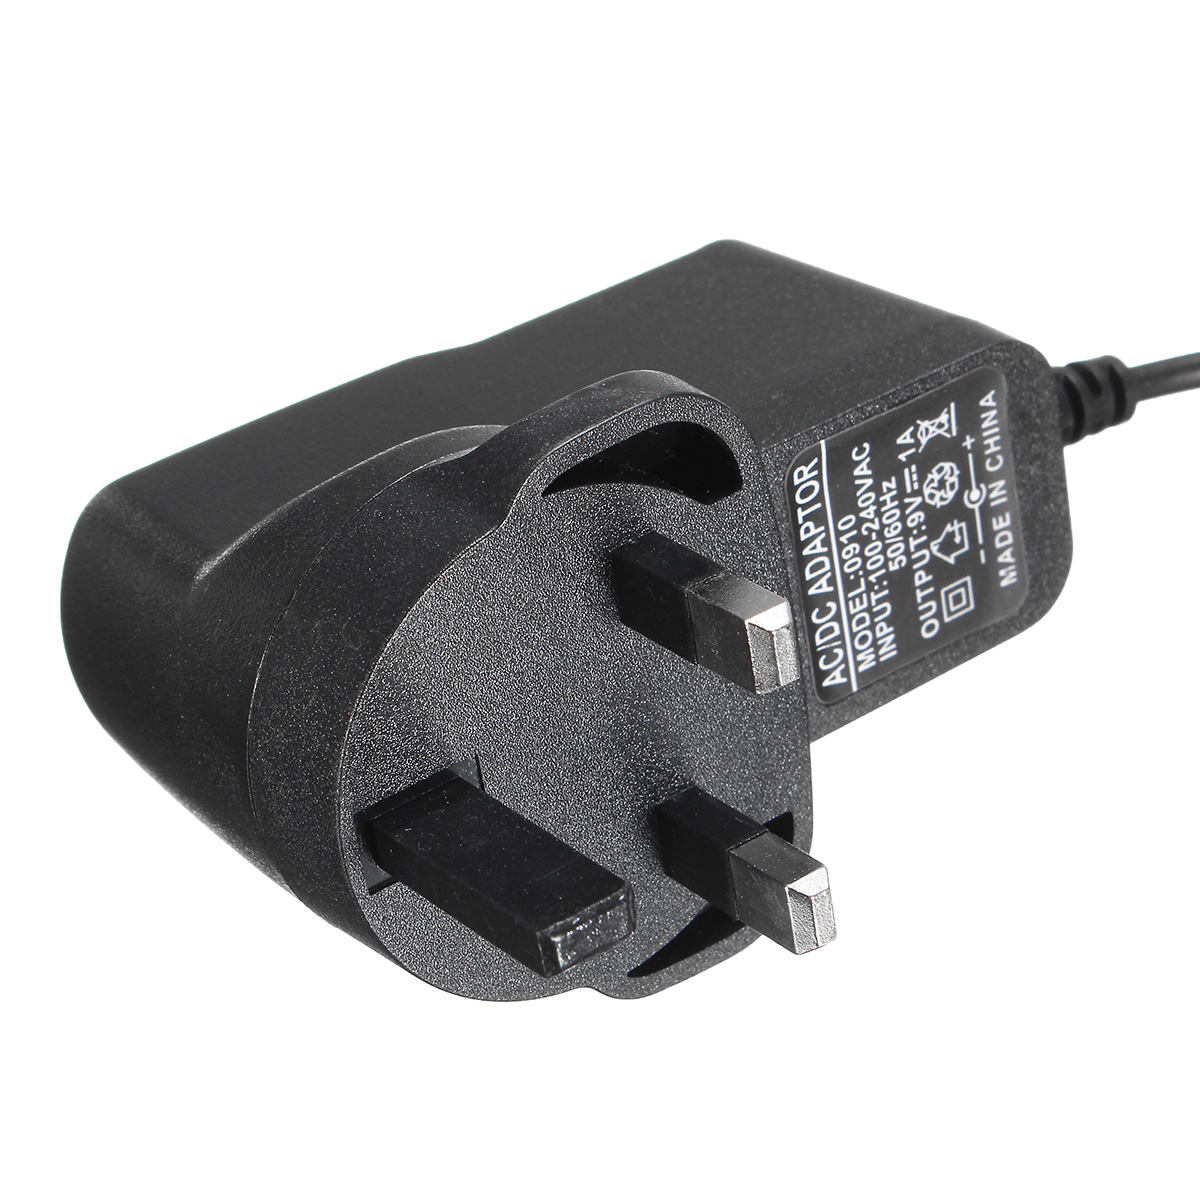 9V 1A AC-DC Adaptor Charger for Argos Bush Portable DVD Player